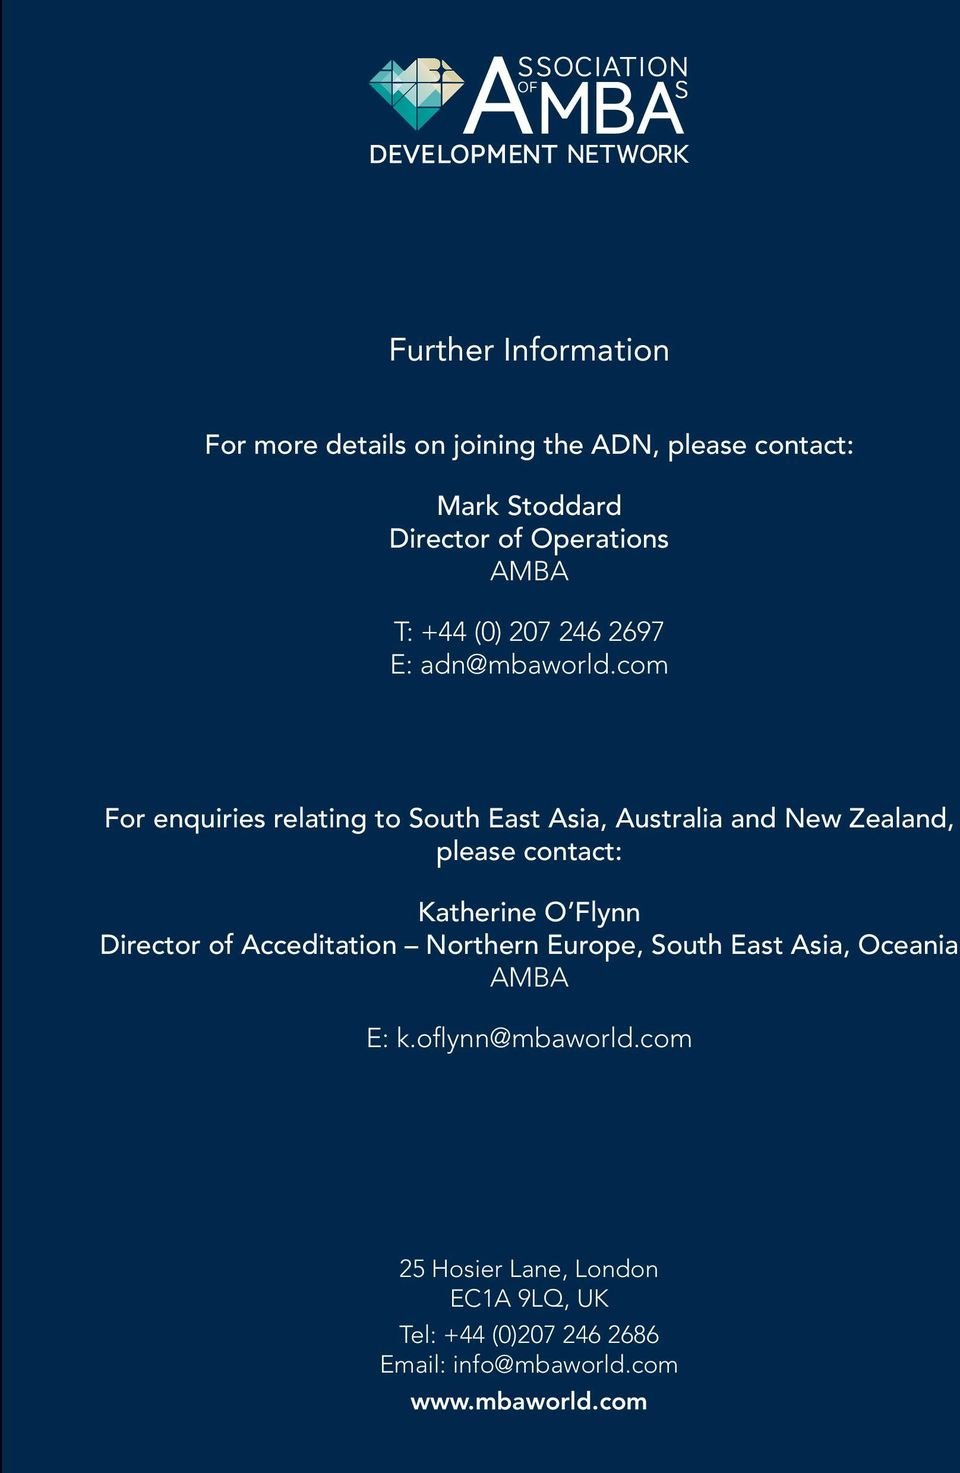 com For enquiries relating to South East Asia, Australia and New Zealand, please contact: Katherine O Flynn Director of